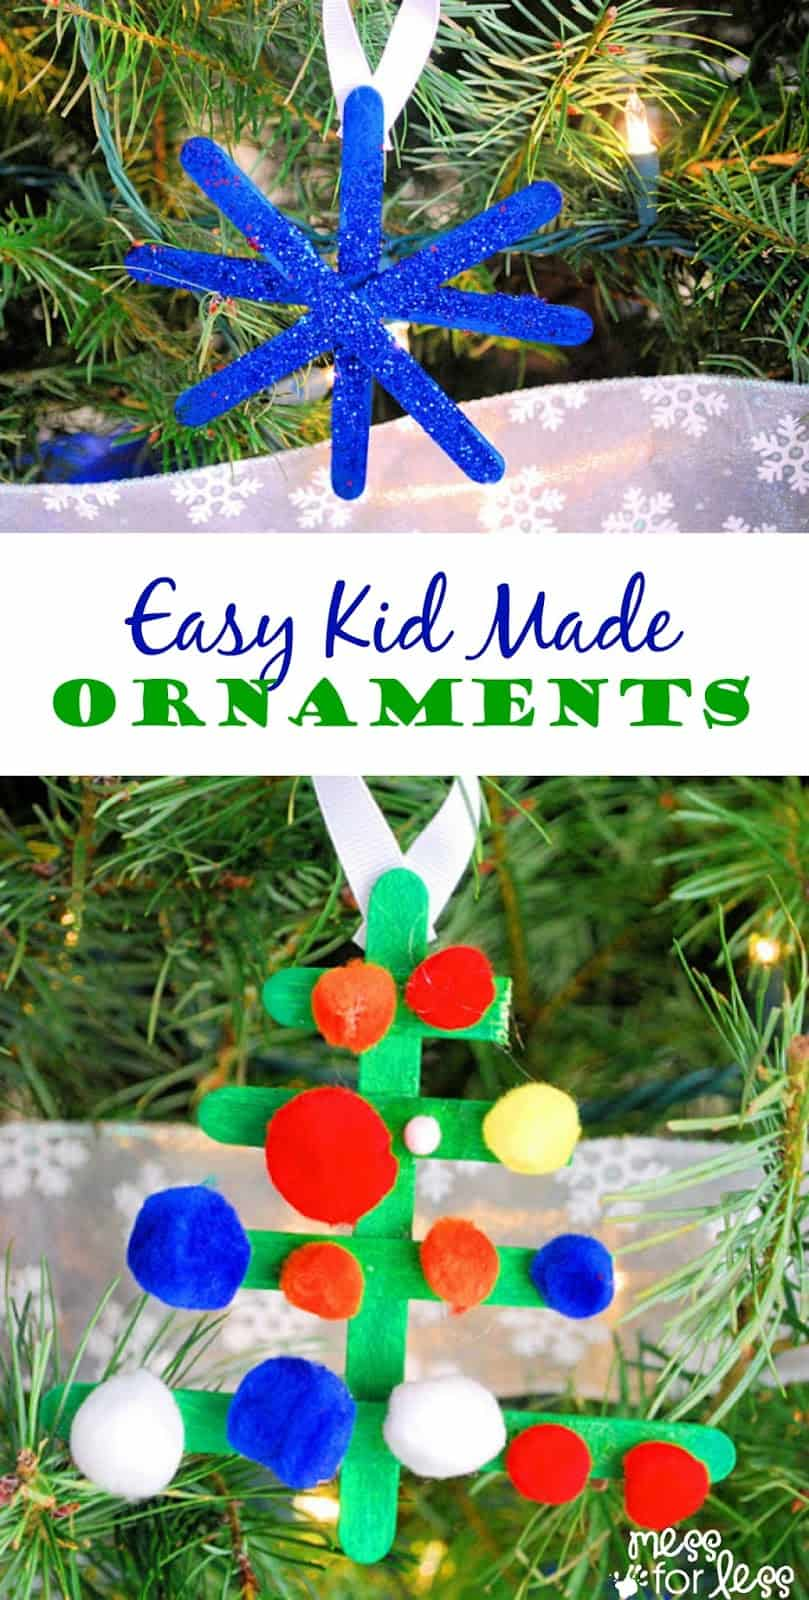 Homemade Christmas Ornaments with Tissue Paper - Mess for Less